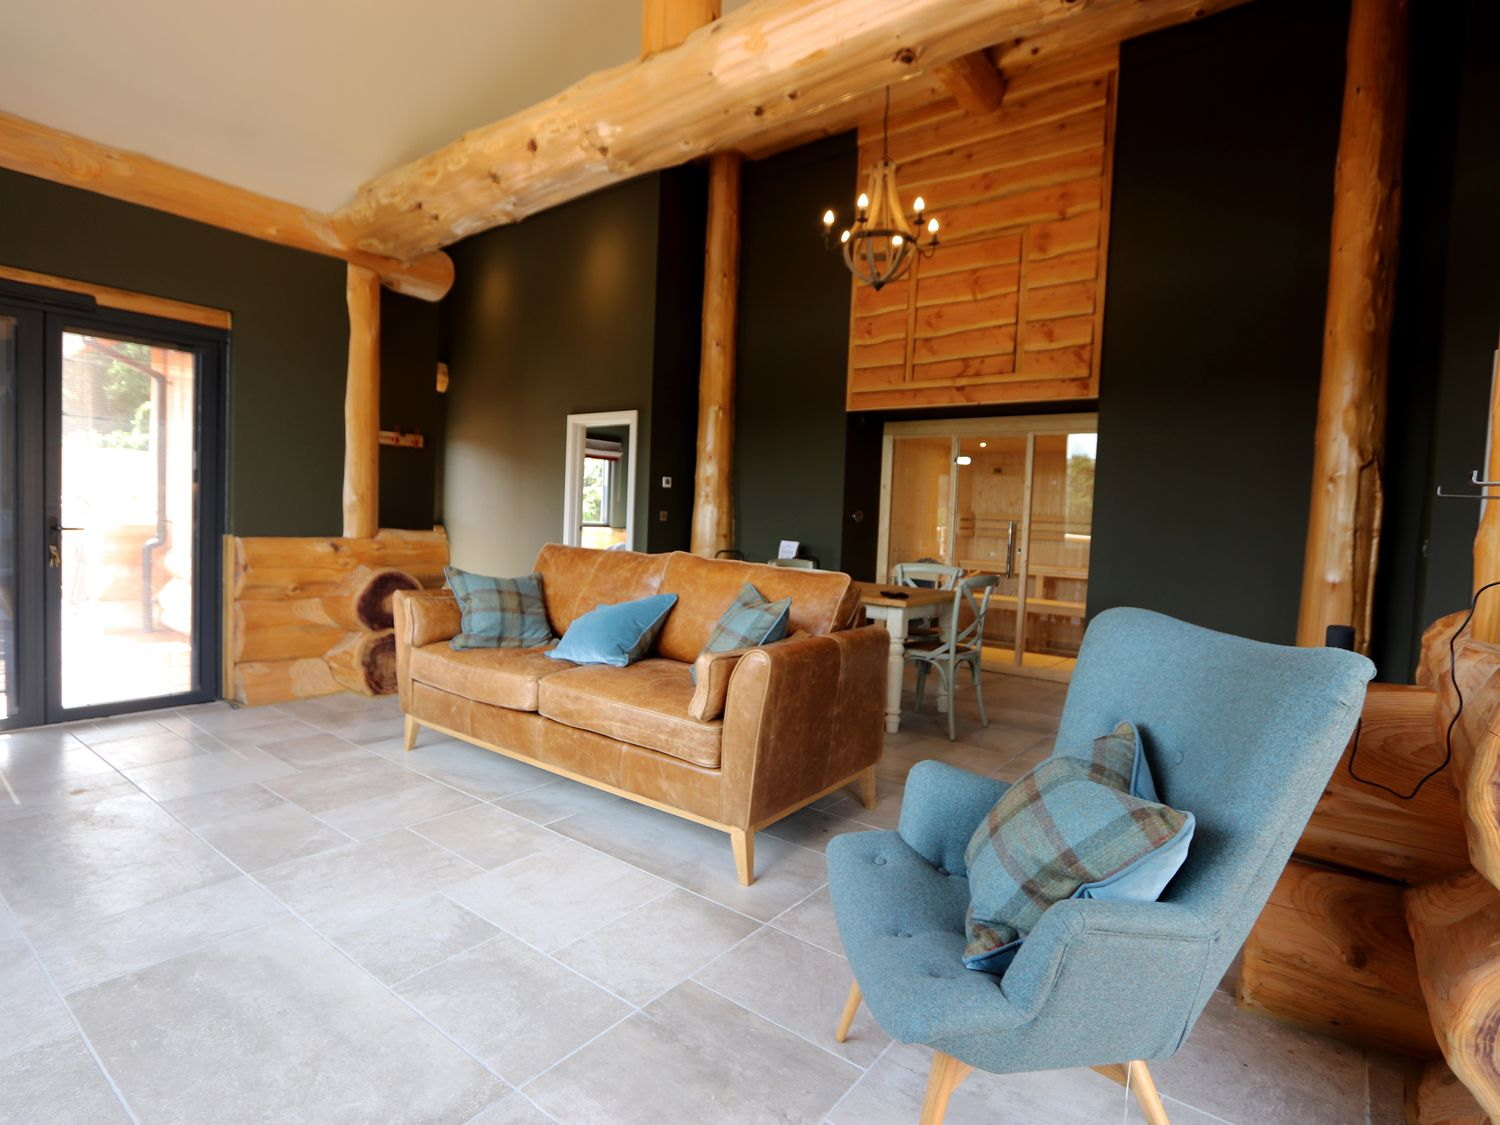 20 Lodges with Hot Tubs within a 90 minute drive of York  - bears den